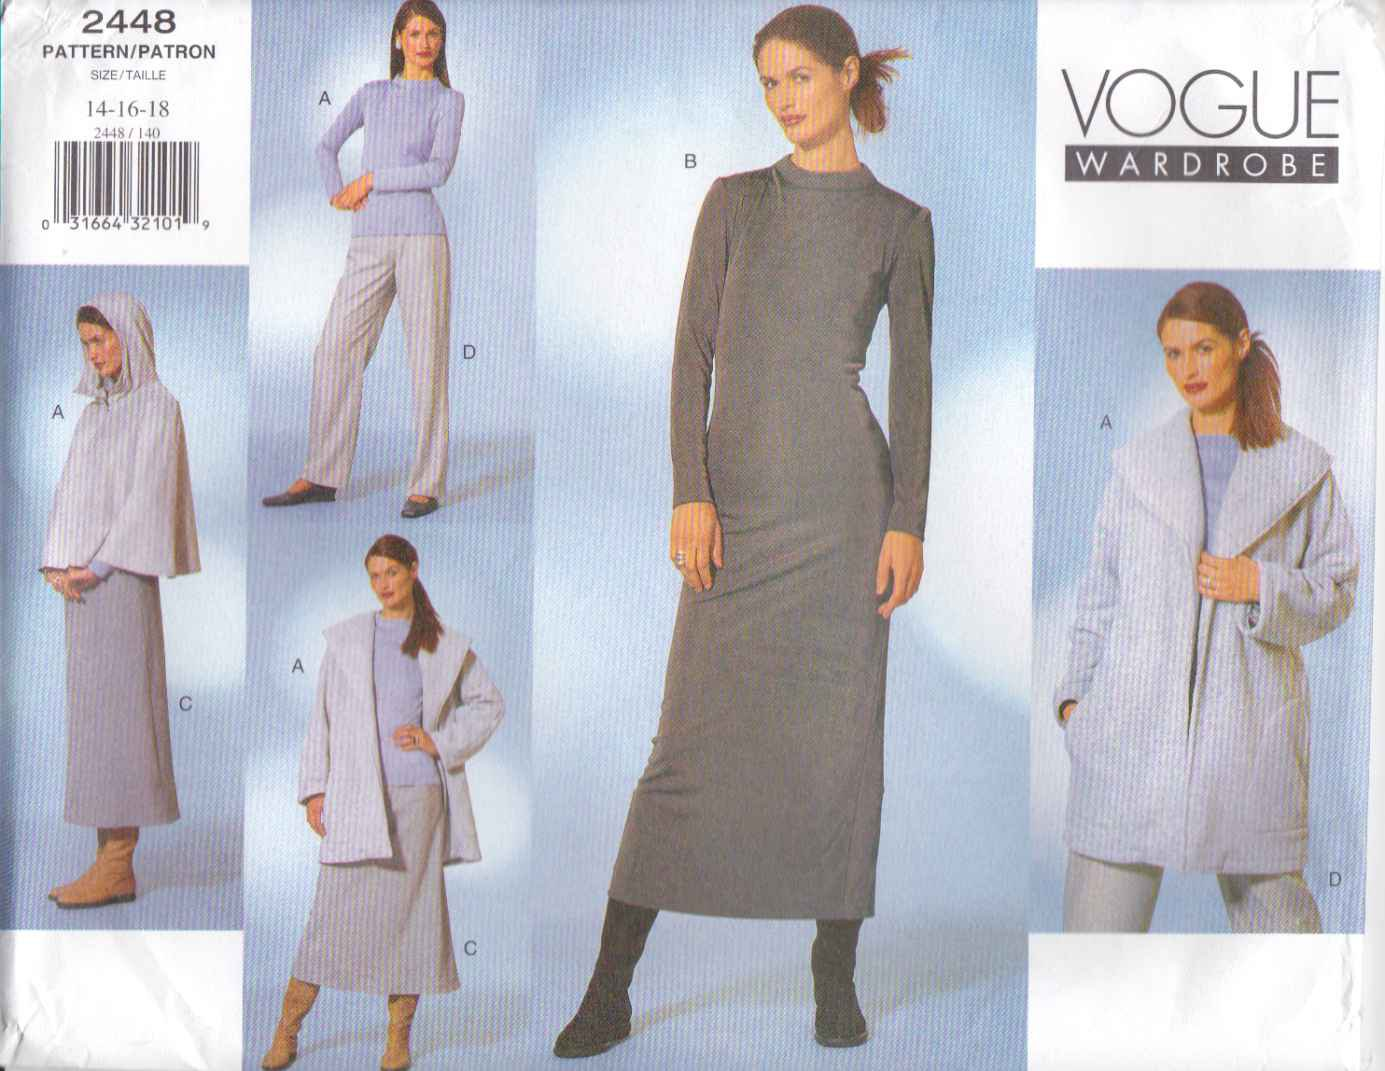 Vogue Sewing Pattern 2448 Misses size 14-16-18 Easy Wardrobe Jacket Cape Dress Pants Skirt Top